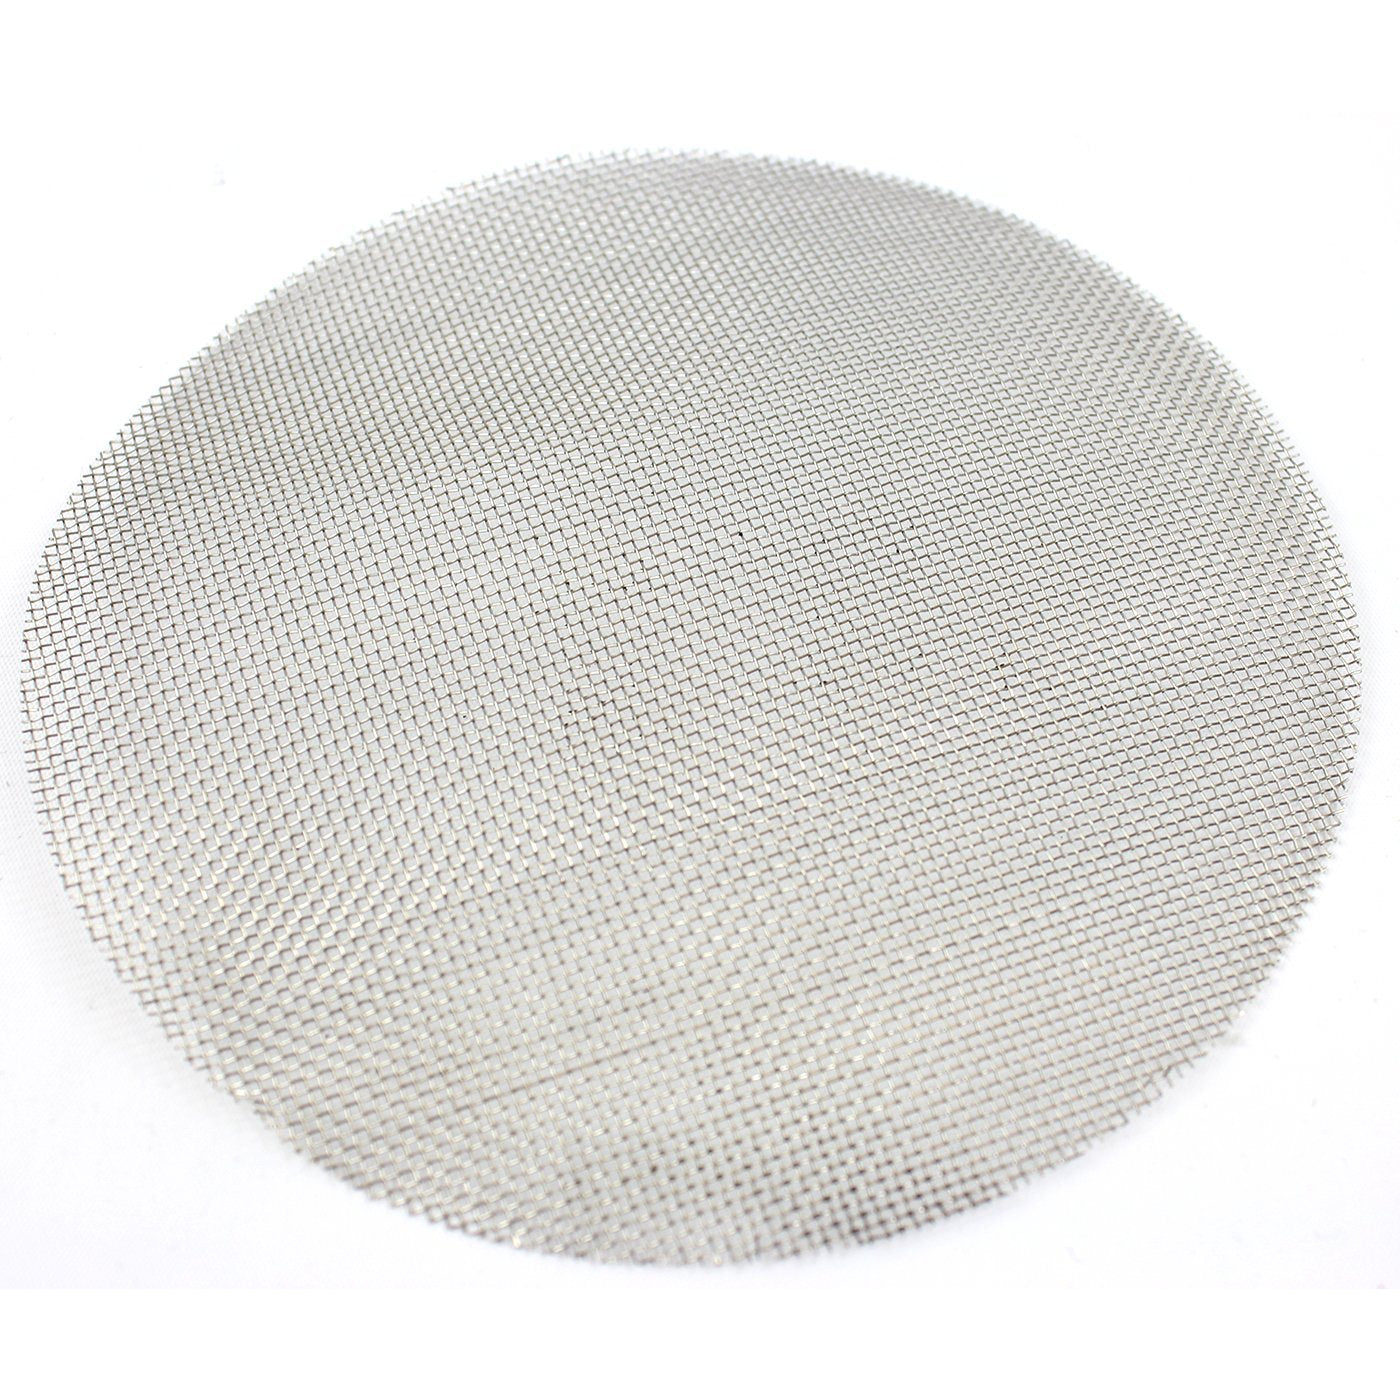 Pre-Cut Stainless Steel Mesh for Tri-Clamp Filter Plates 100 Mesh (150 Micron) 1.5-inch